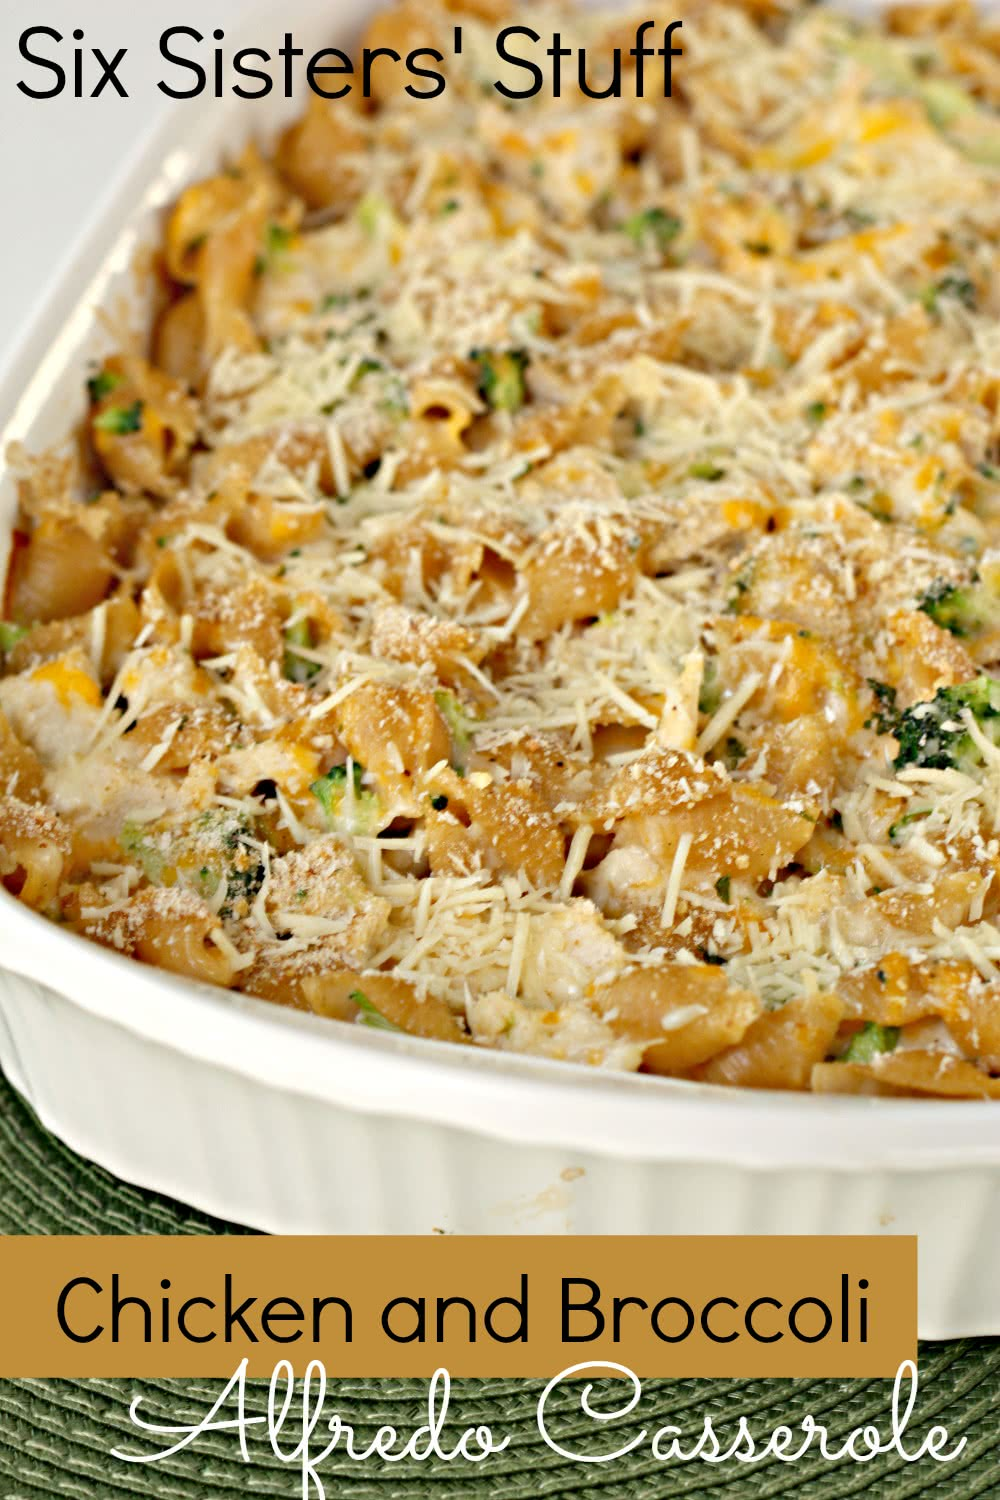 Chicken and Broccoli Alfredo Casserole Recipe